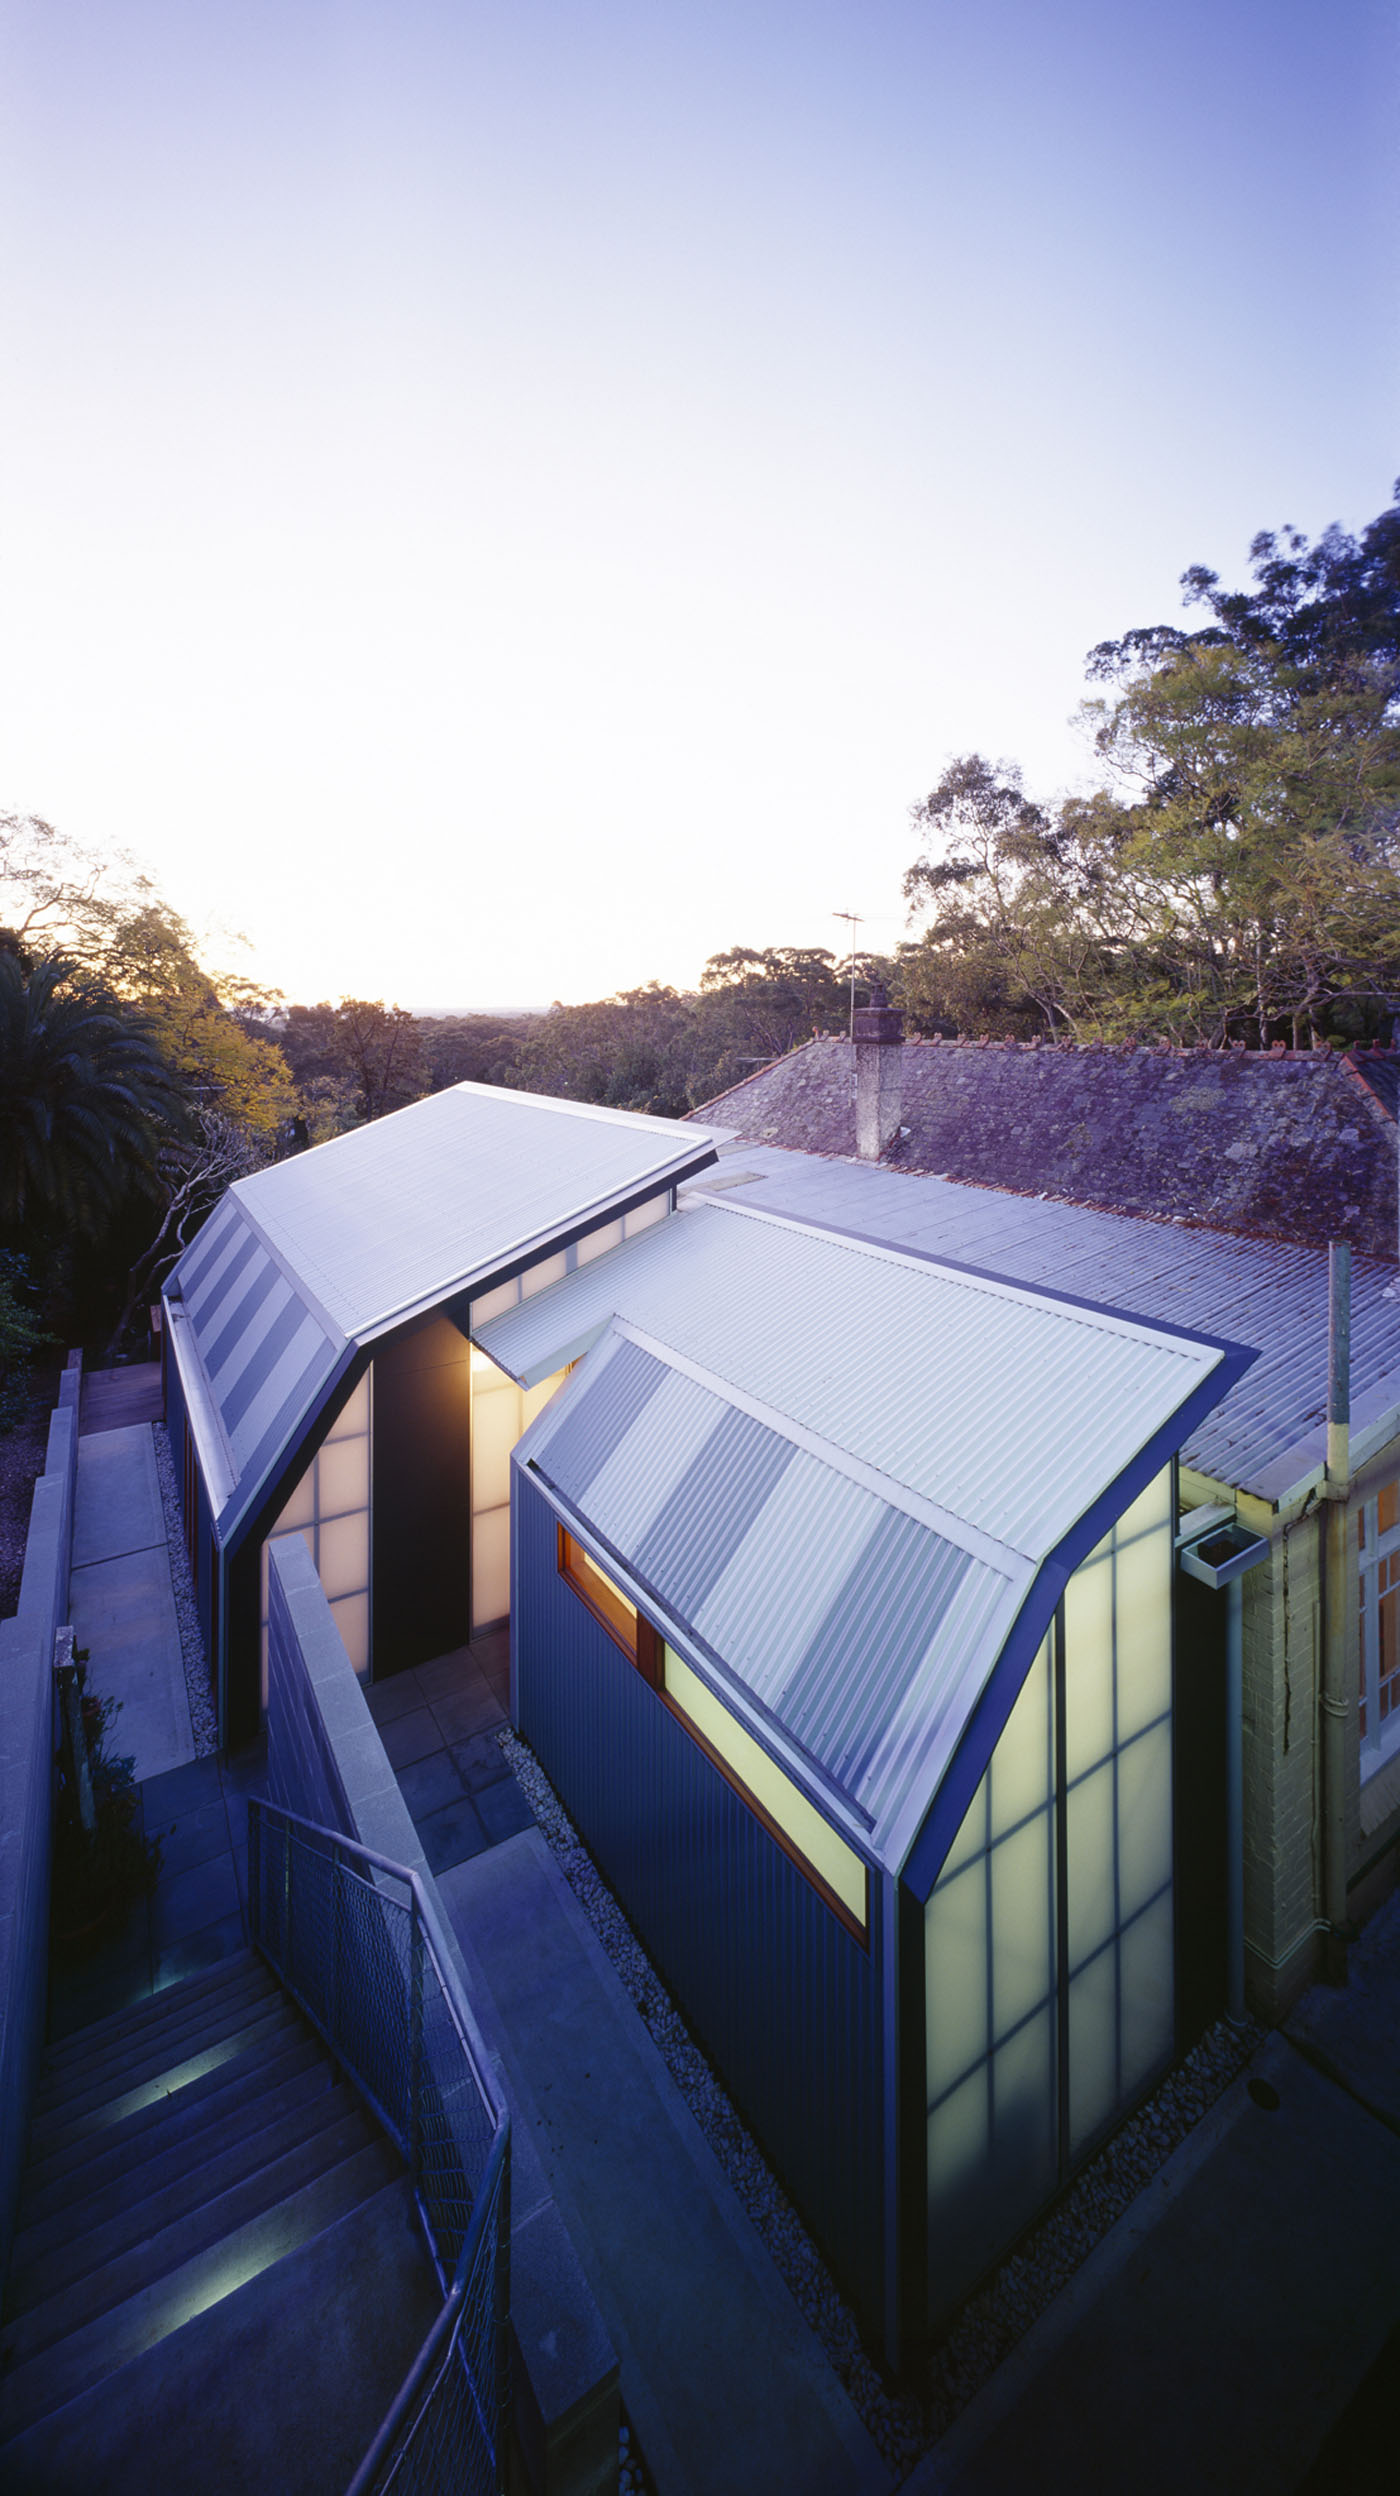 Wave House by Sydney award winning residential architecture firm Sam Crawford Architects. View to house at twilight. Light filtered through translucent polycarbonate sheets